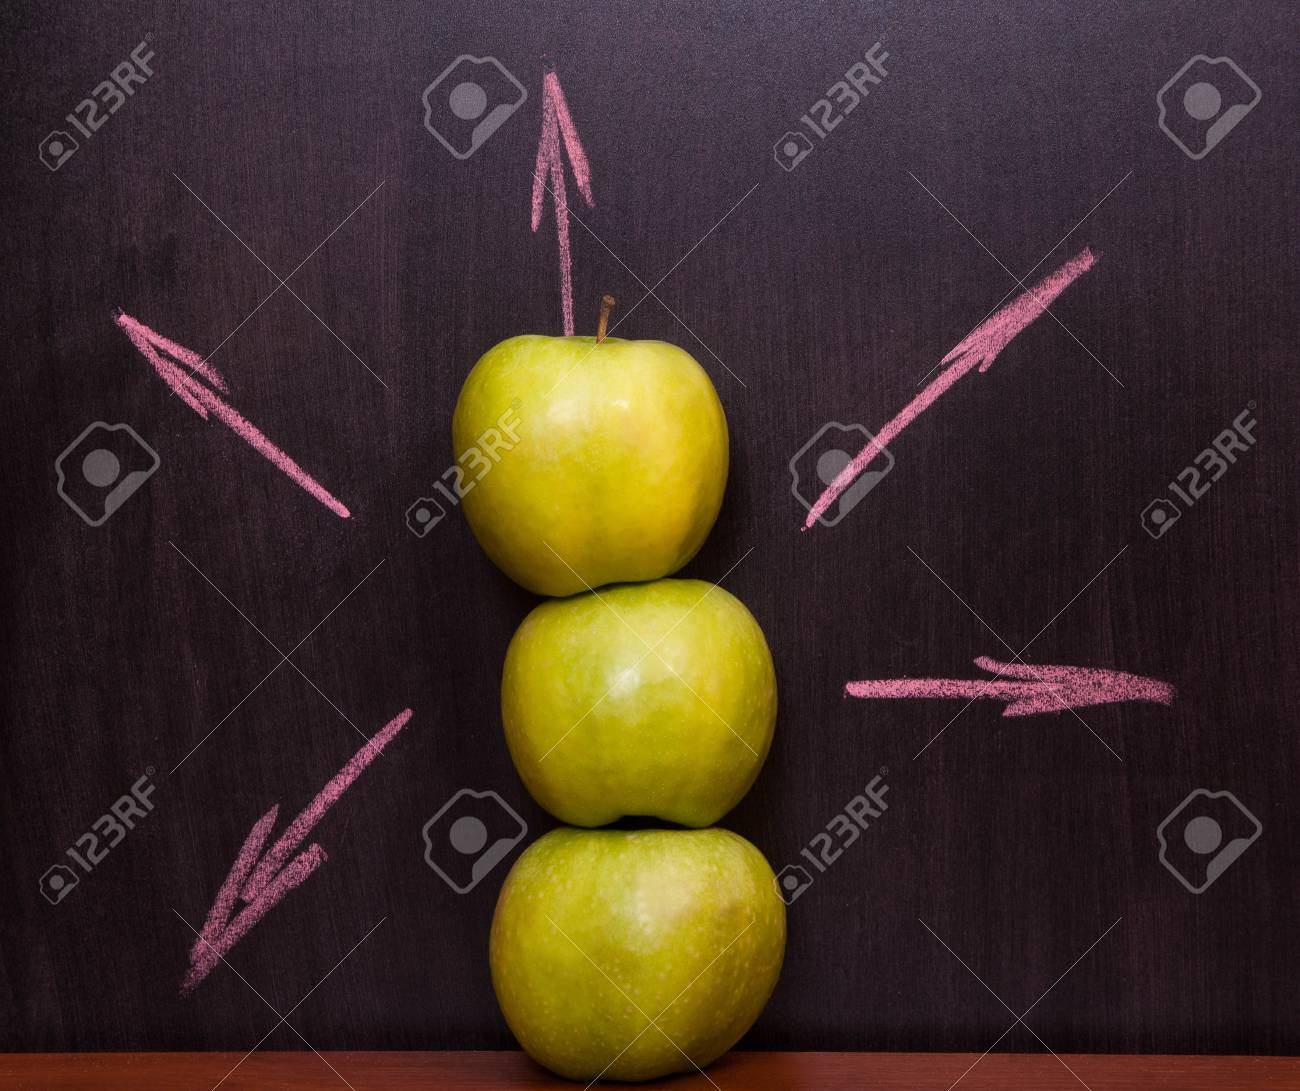 Classroom chalkboard with apples. Stock Photo - 19290034